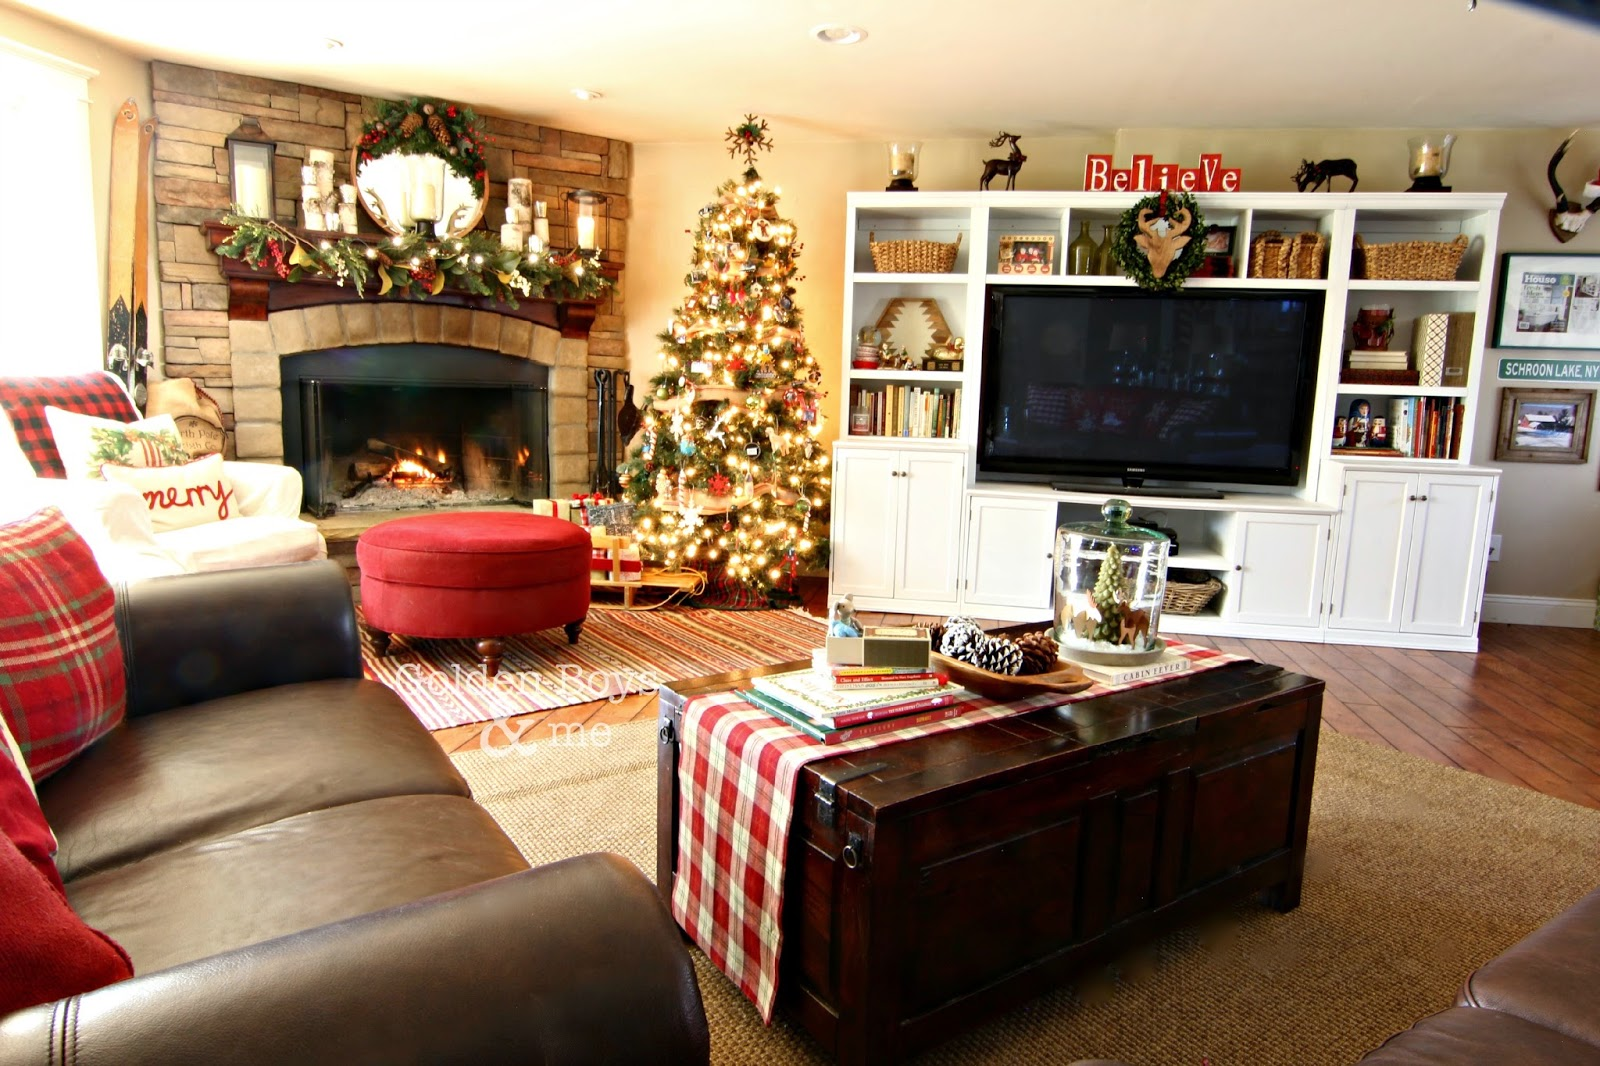 Rustic lodge style family room with Pottery Barn style wall unit with Christmas decor-www.goldenboysandme.com